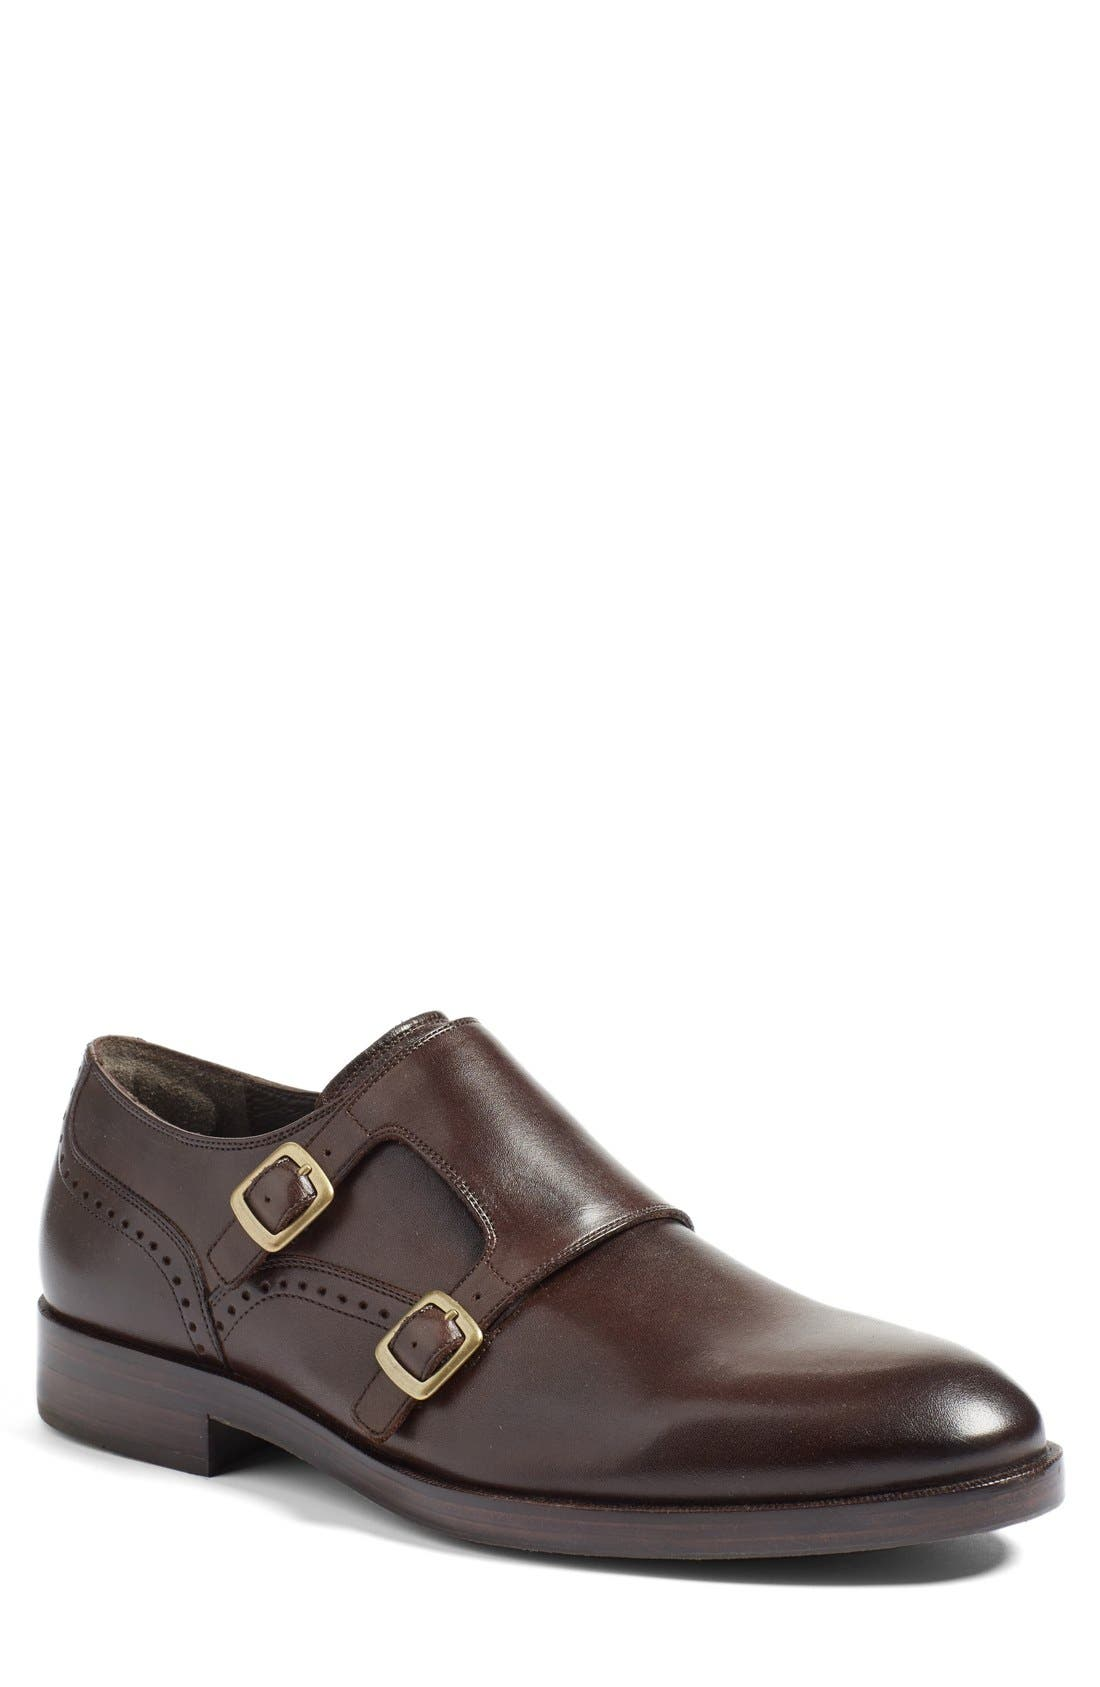 'Harrison' Double Monk Strap Shoe,                             Main thumbnail 1, color,                             205